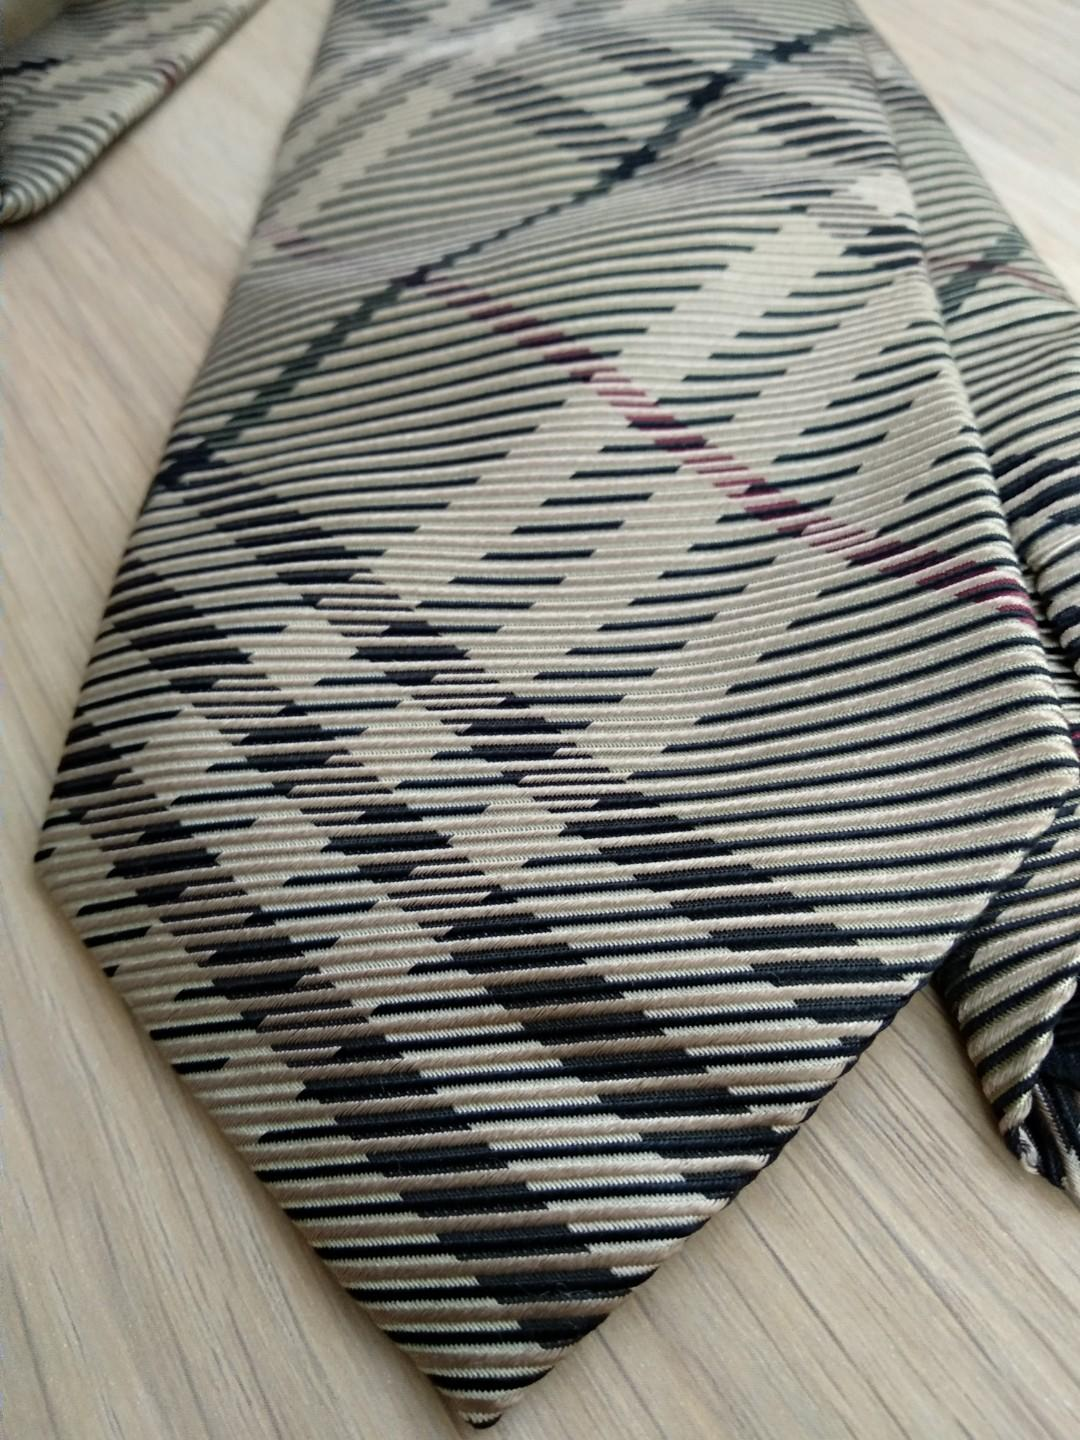 Burberry London Modern Cut Line Textured Check Silk Neck Tie Made in Italy Limited Edition